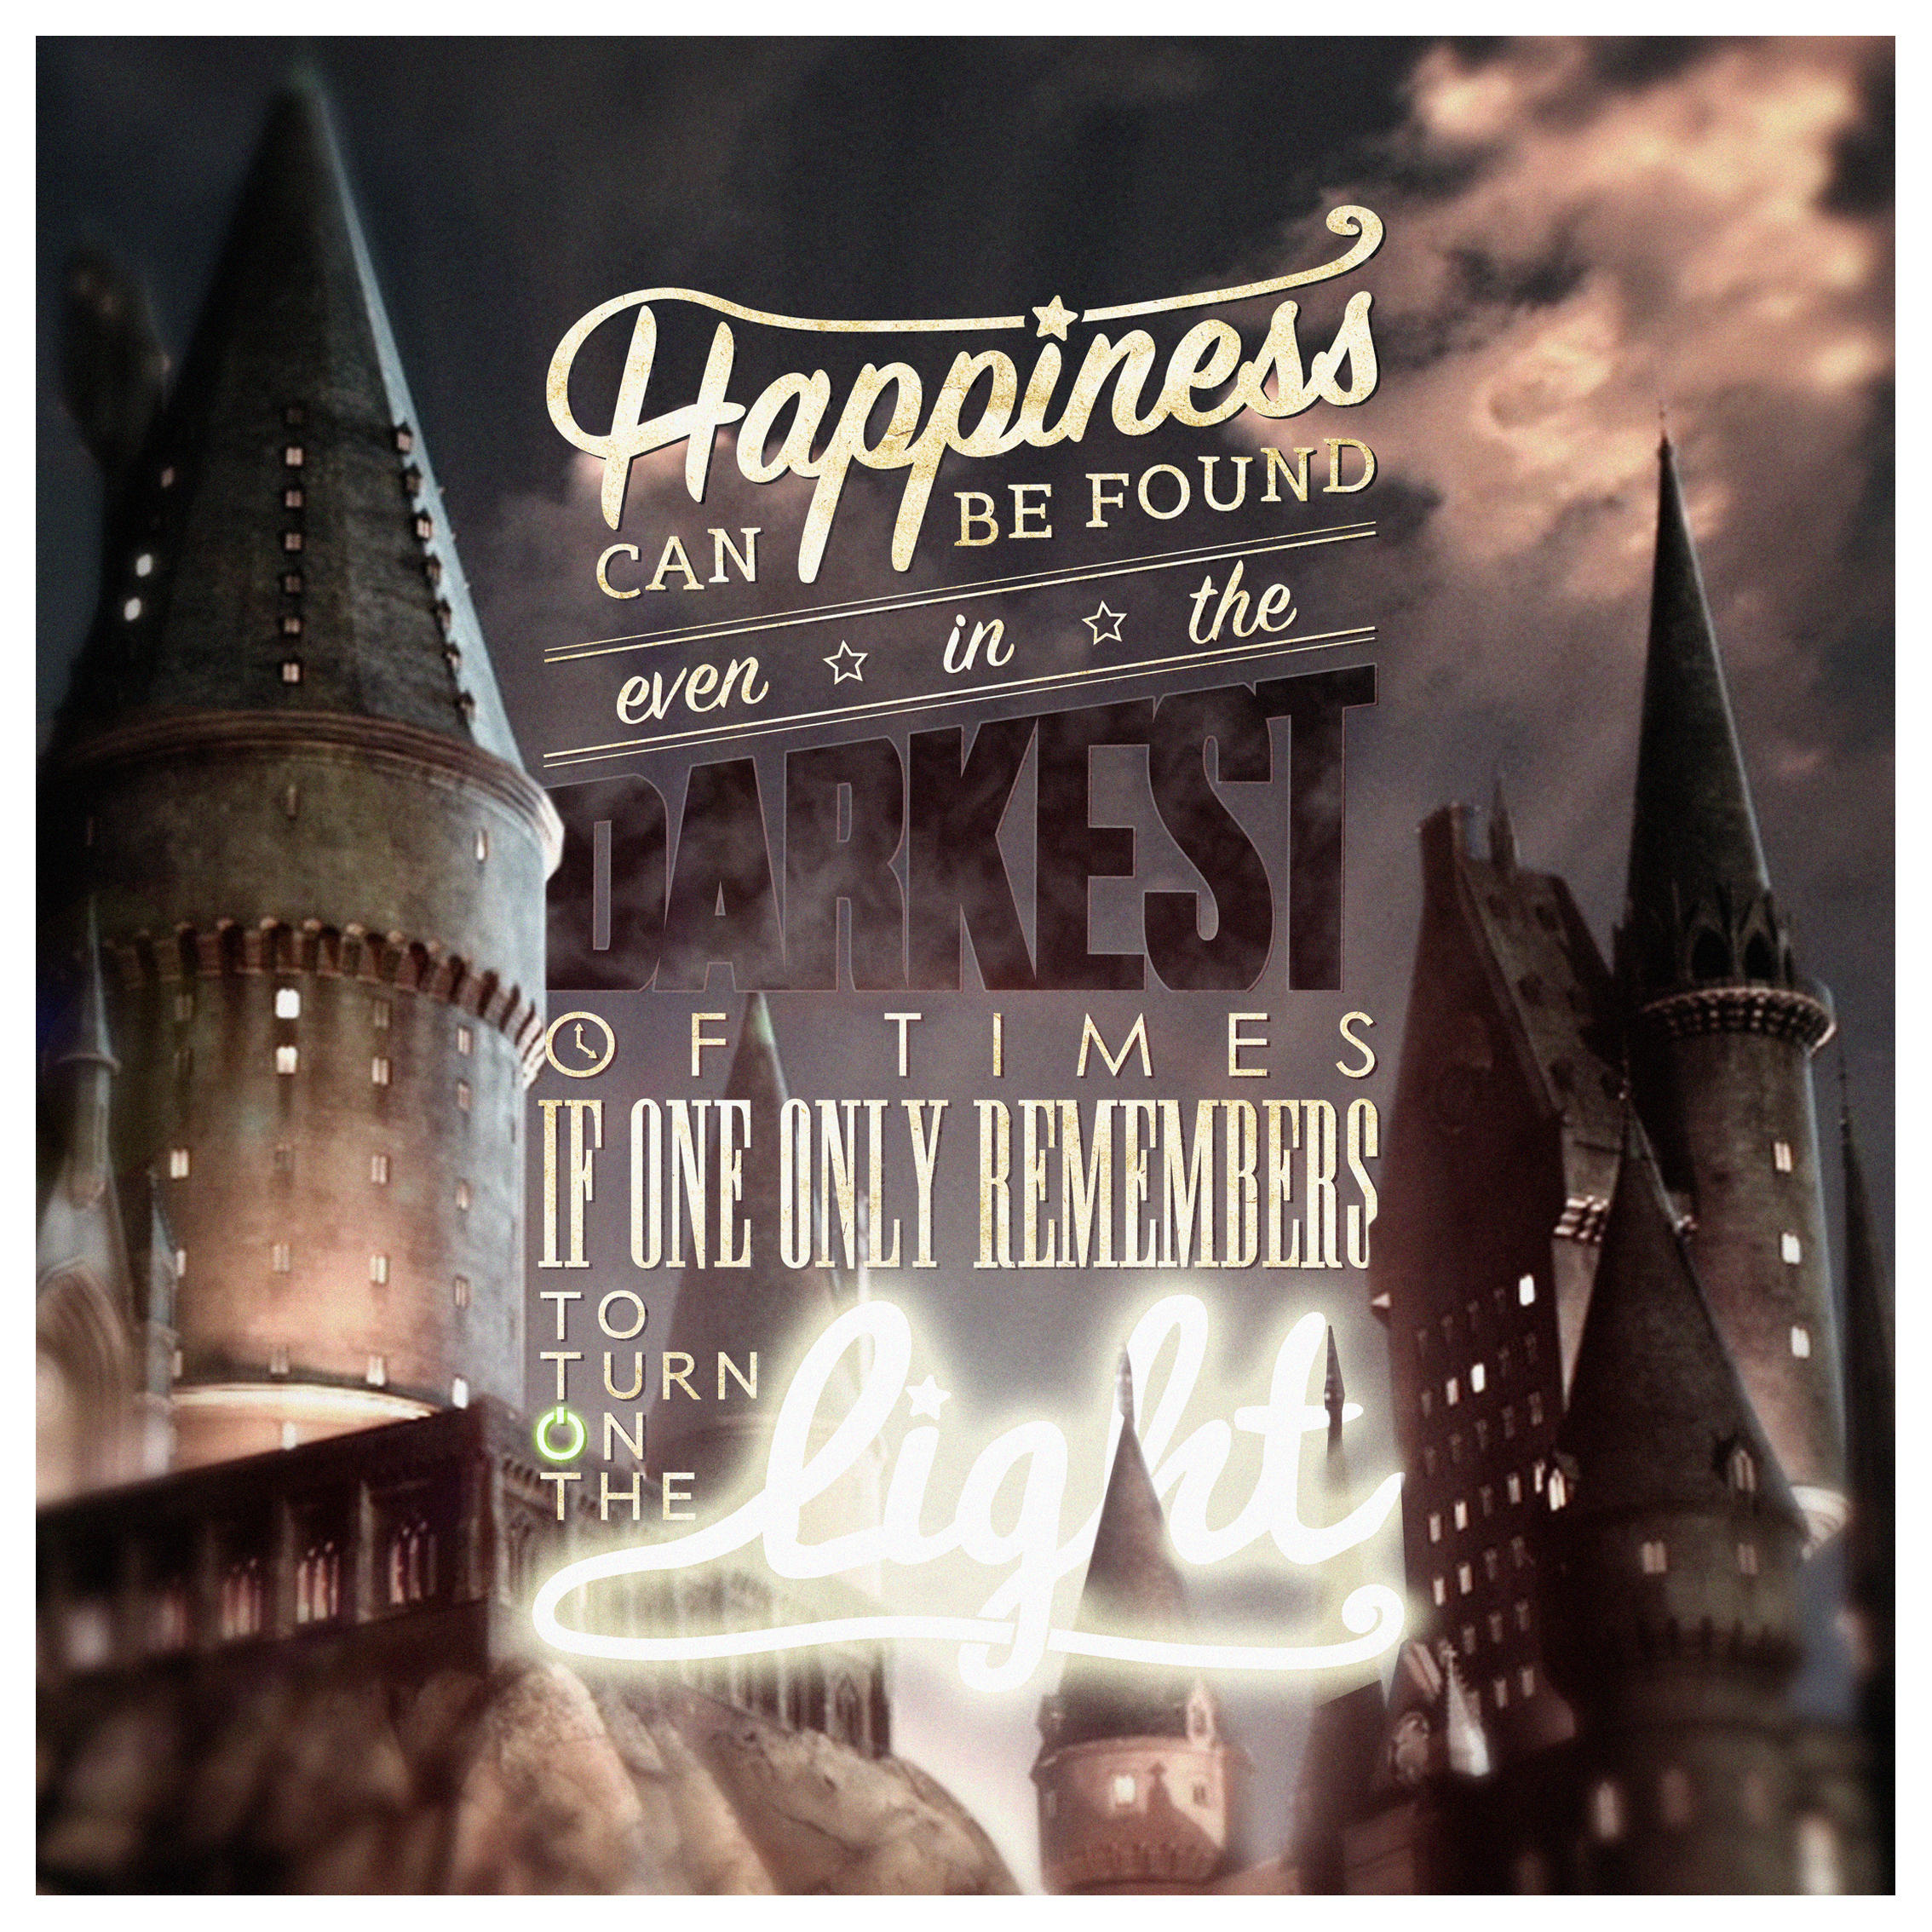 My favorite HP quote by mickhummel